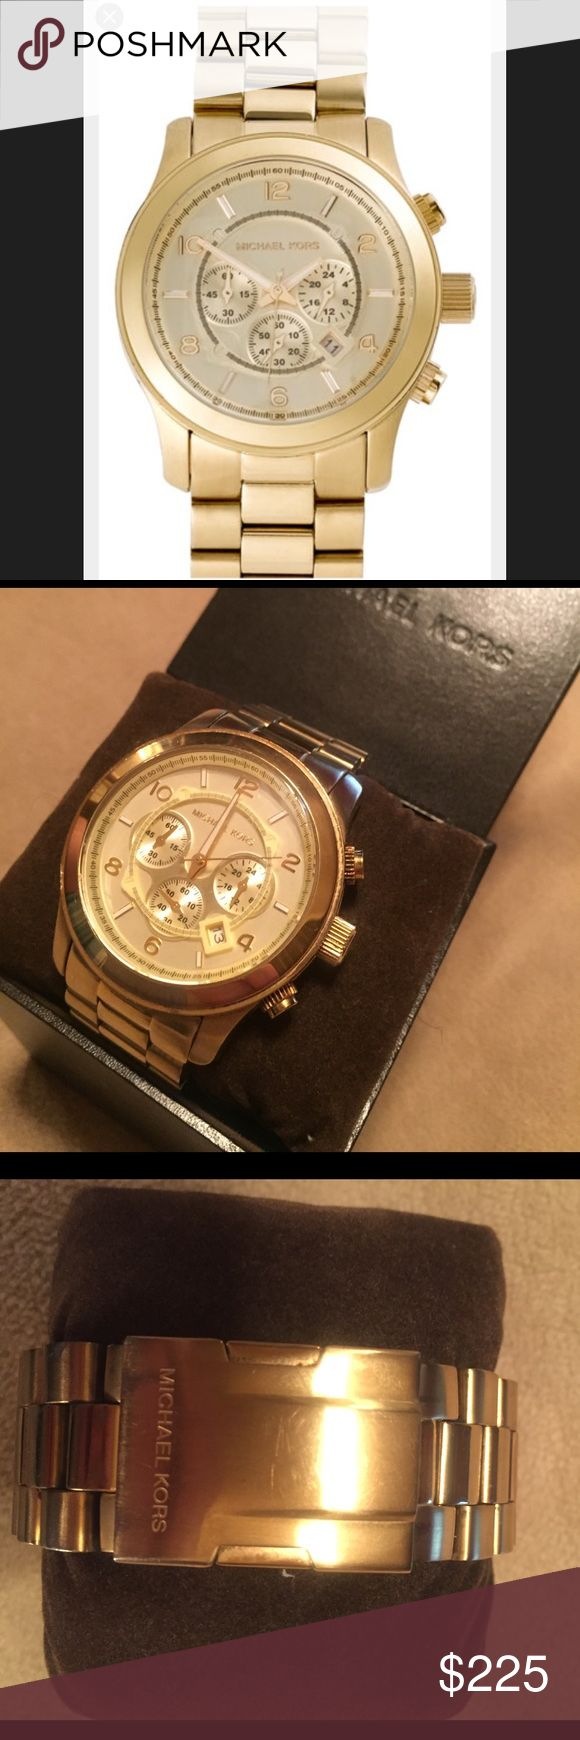 """Michael kors oversized runway watch Michael Kors Men's MK8077 Runway Watch, 45mm COLOR GOLD! Although the item is listed as """"men's,"""" this watch can be worn by any gender and looks great and stylish on ANYONE!  Great for stacking with different sized bangles and cuffs!  Item was sized to previous owner but does come with extra links.  Watch is used with minimal scratches, new battery is needed. PRICE IS NEGOTIABLE!  please contact with any inquiries :) Michael Kors Accessories Watches"""